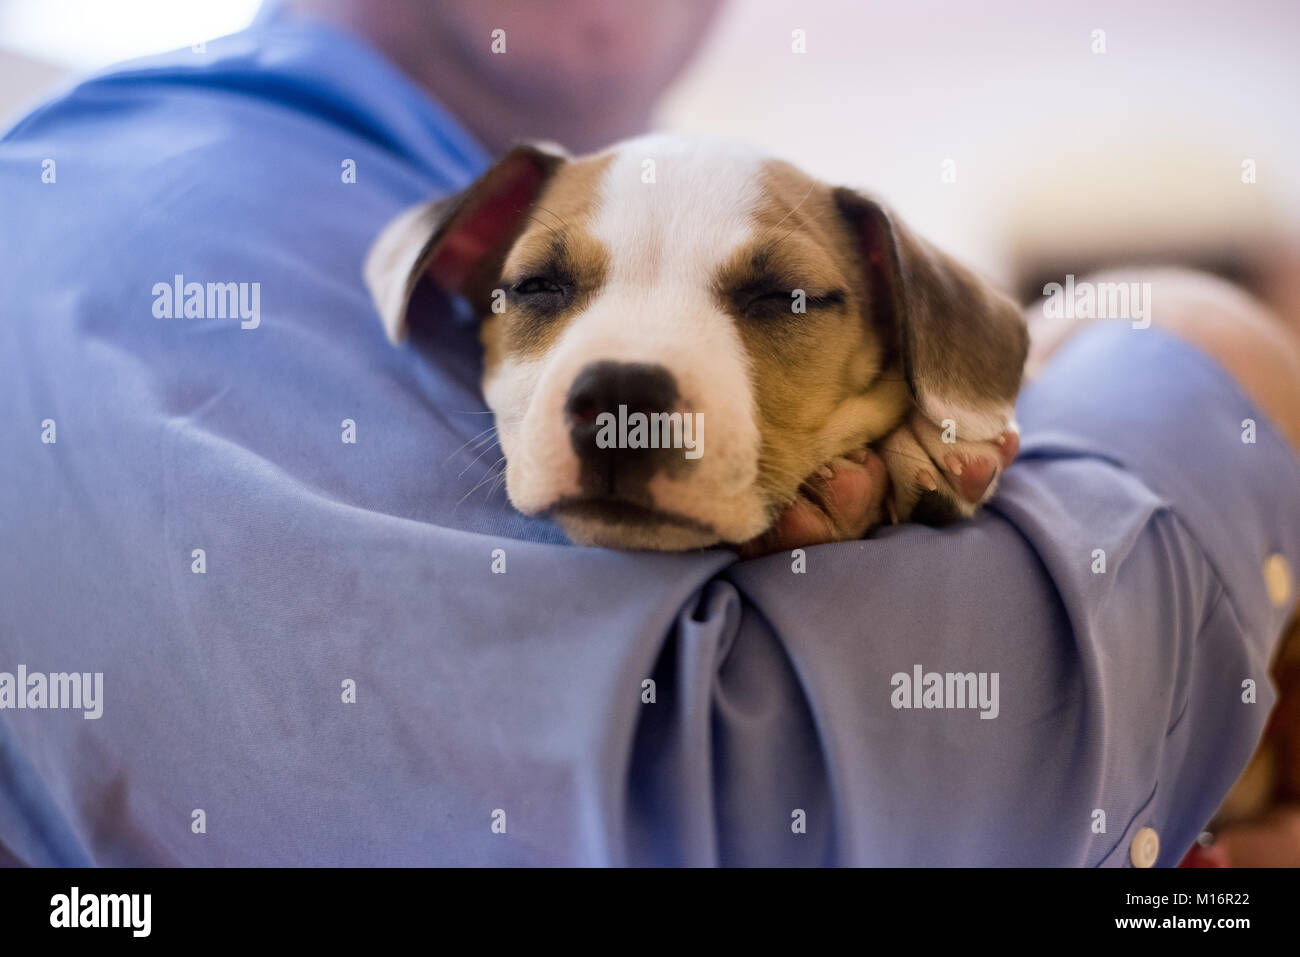 A man holds a sleeping 7 week old Beagle mix puppy. - Stock Image